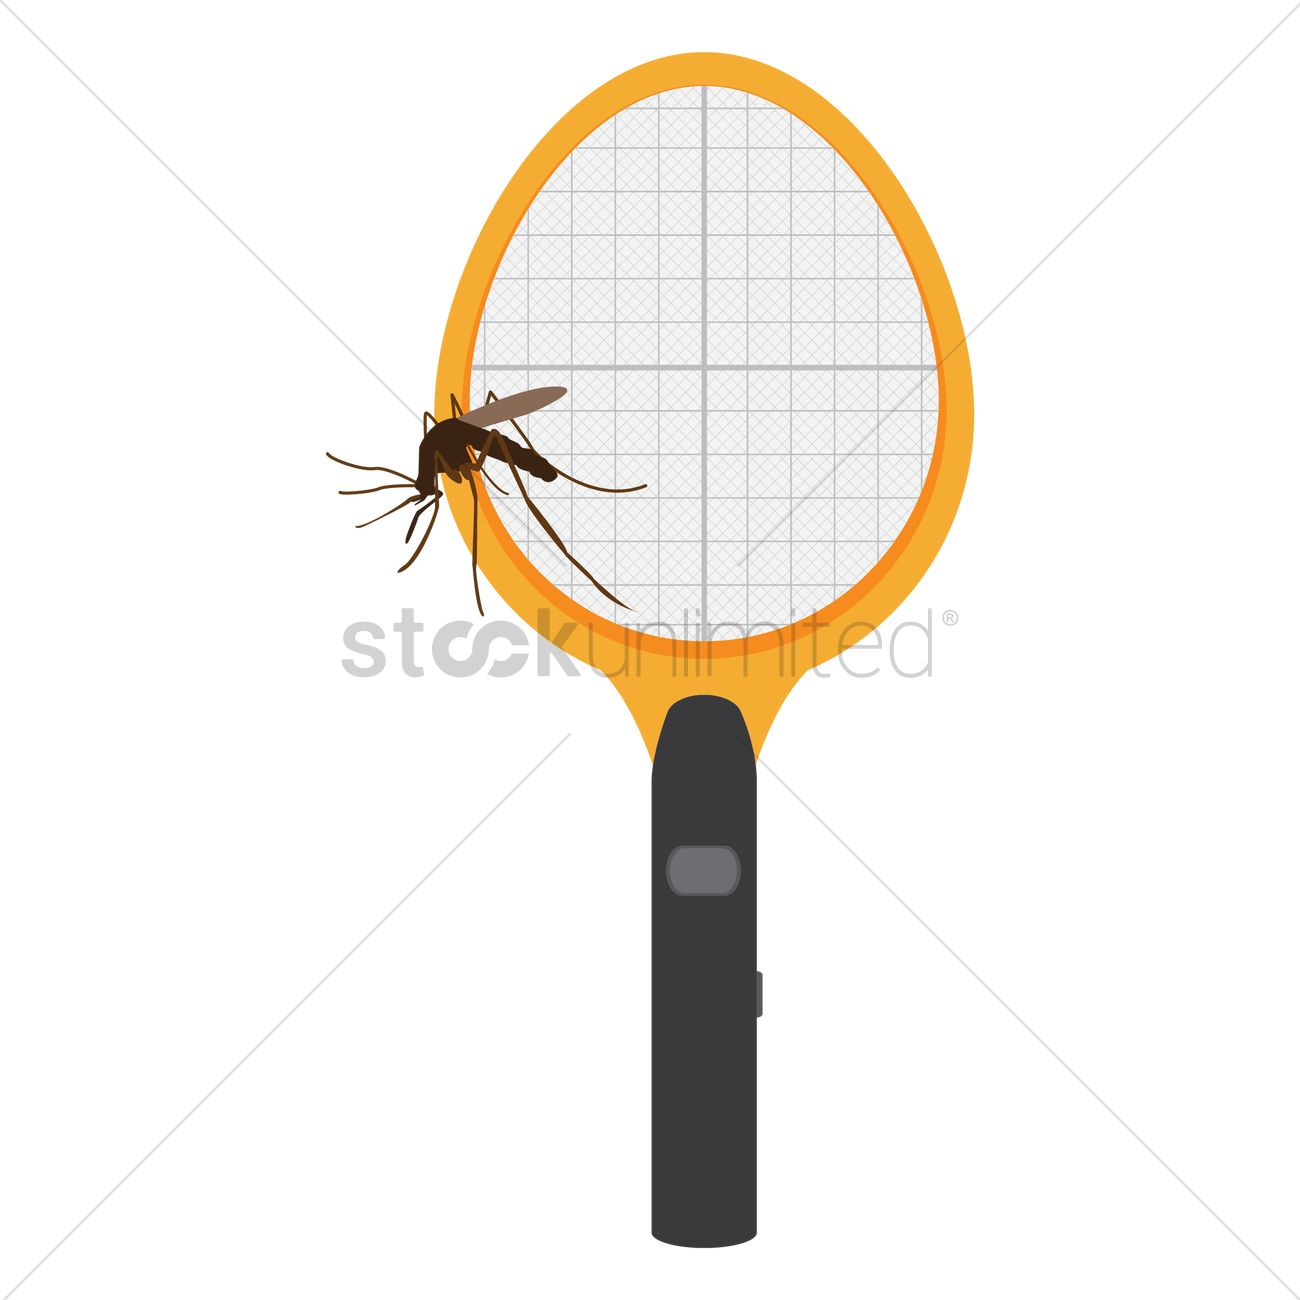 Free Mosquito Killing Bat Vector Image 1288483 Stockunlimited